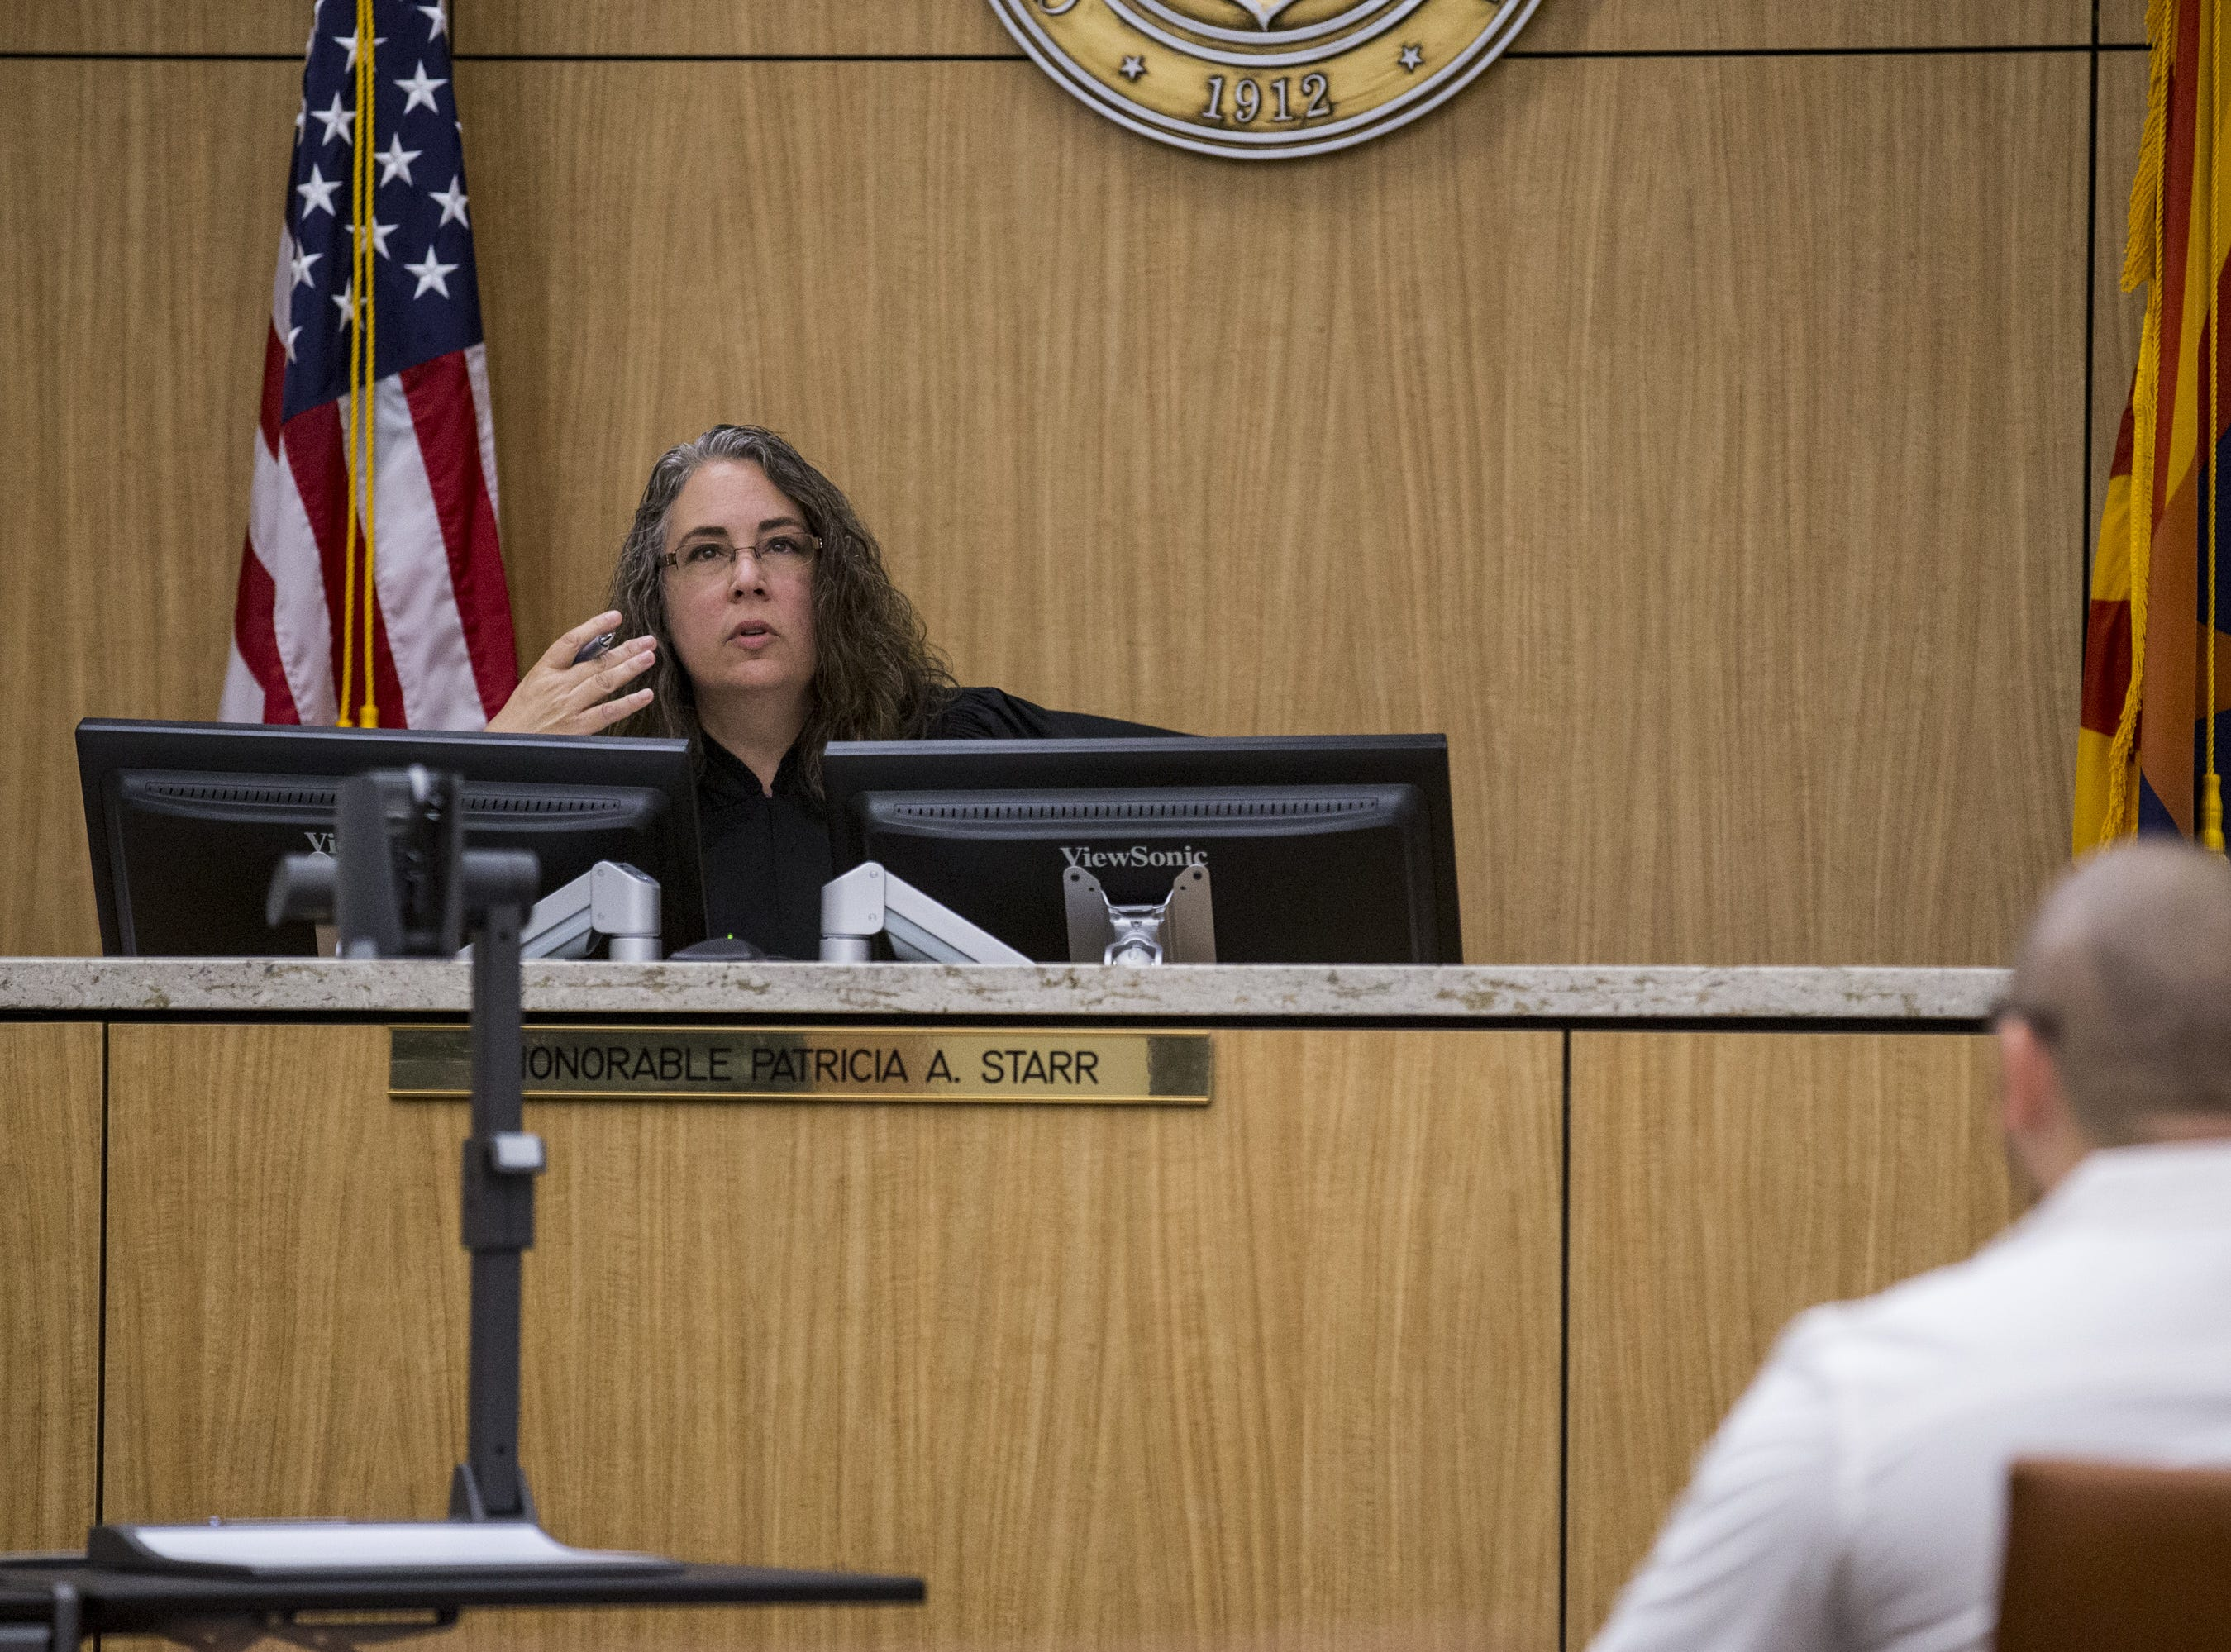 Judge Patricia Starr speaks to Michael Jaso on Friday, Aug. 17, 2018, during a hearing for people who failed to show up for jury duty at Maricopa County Superior Court in Phoenix.